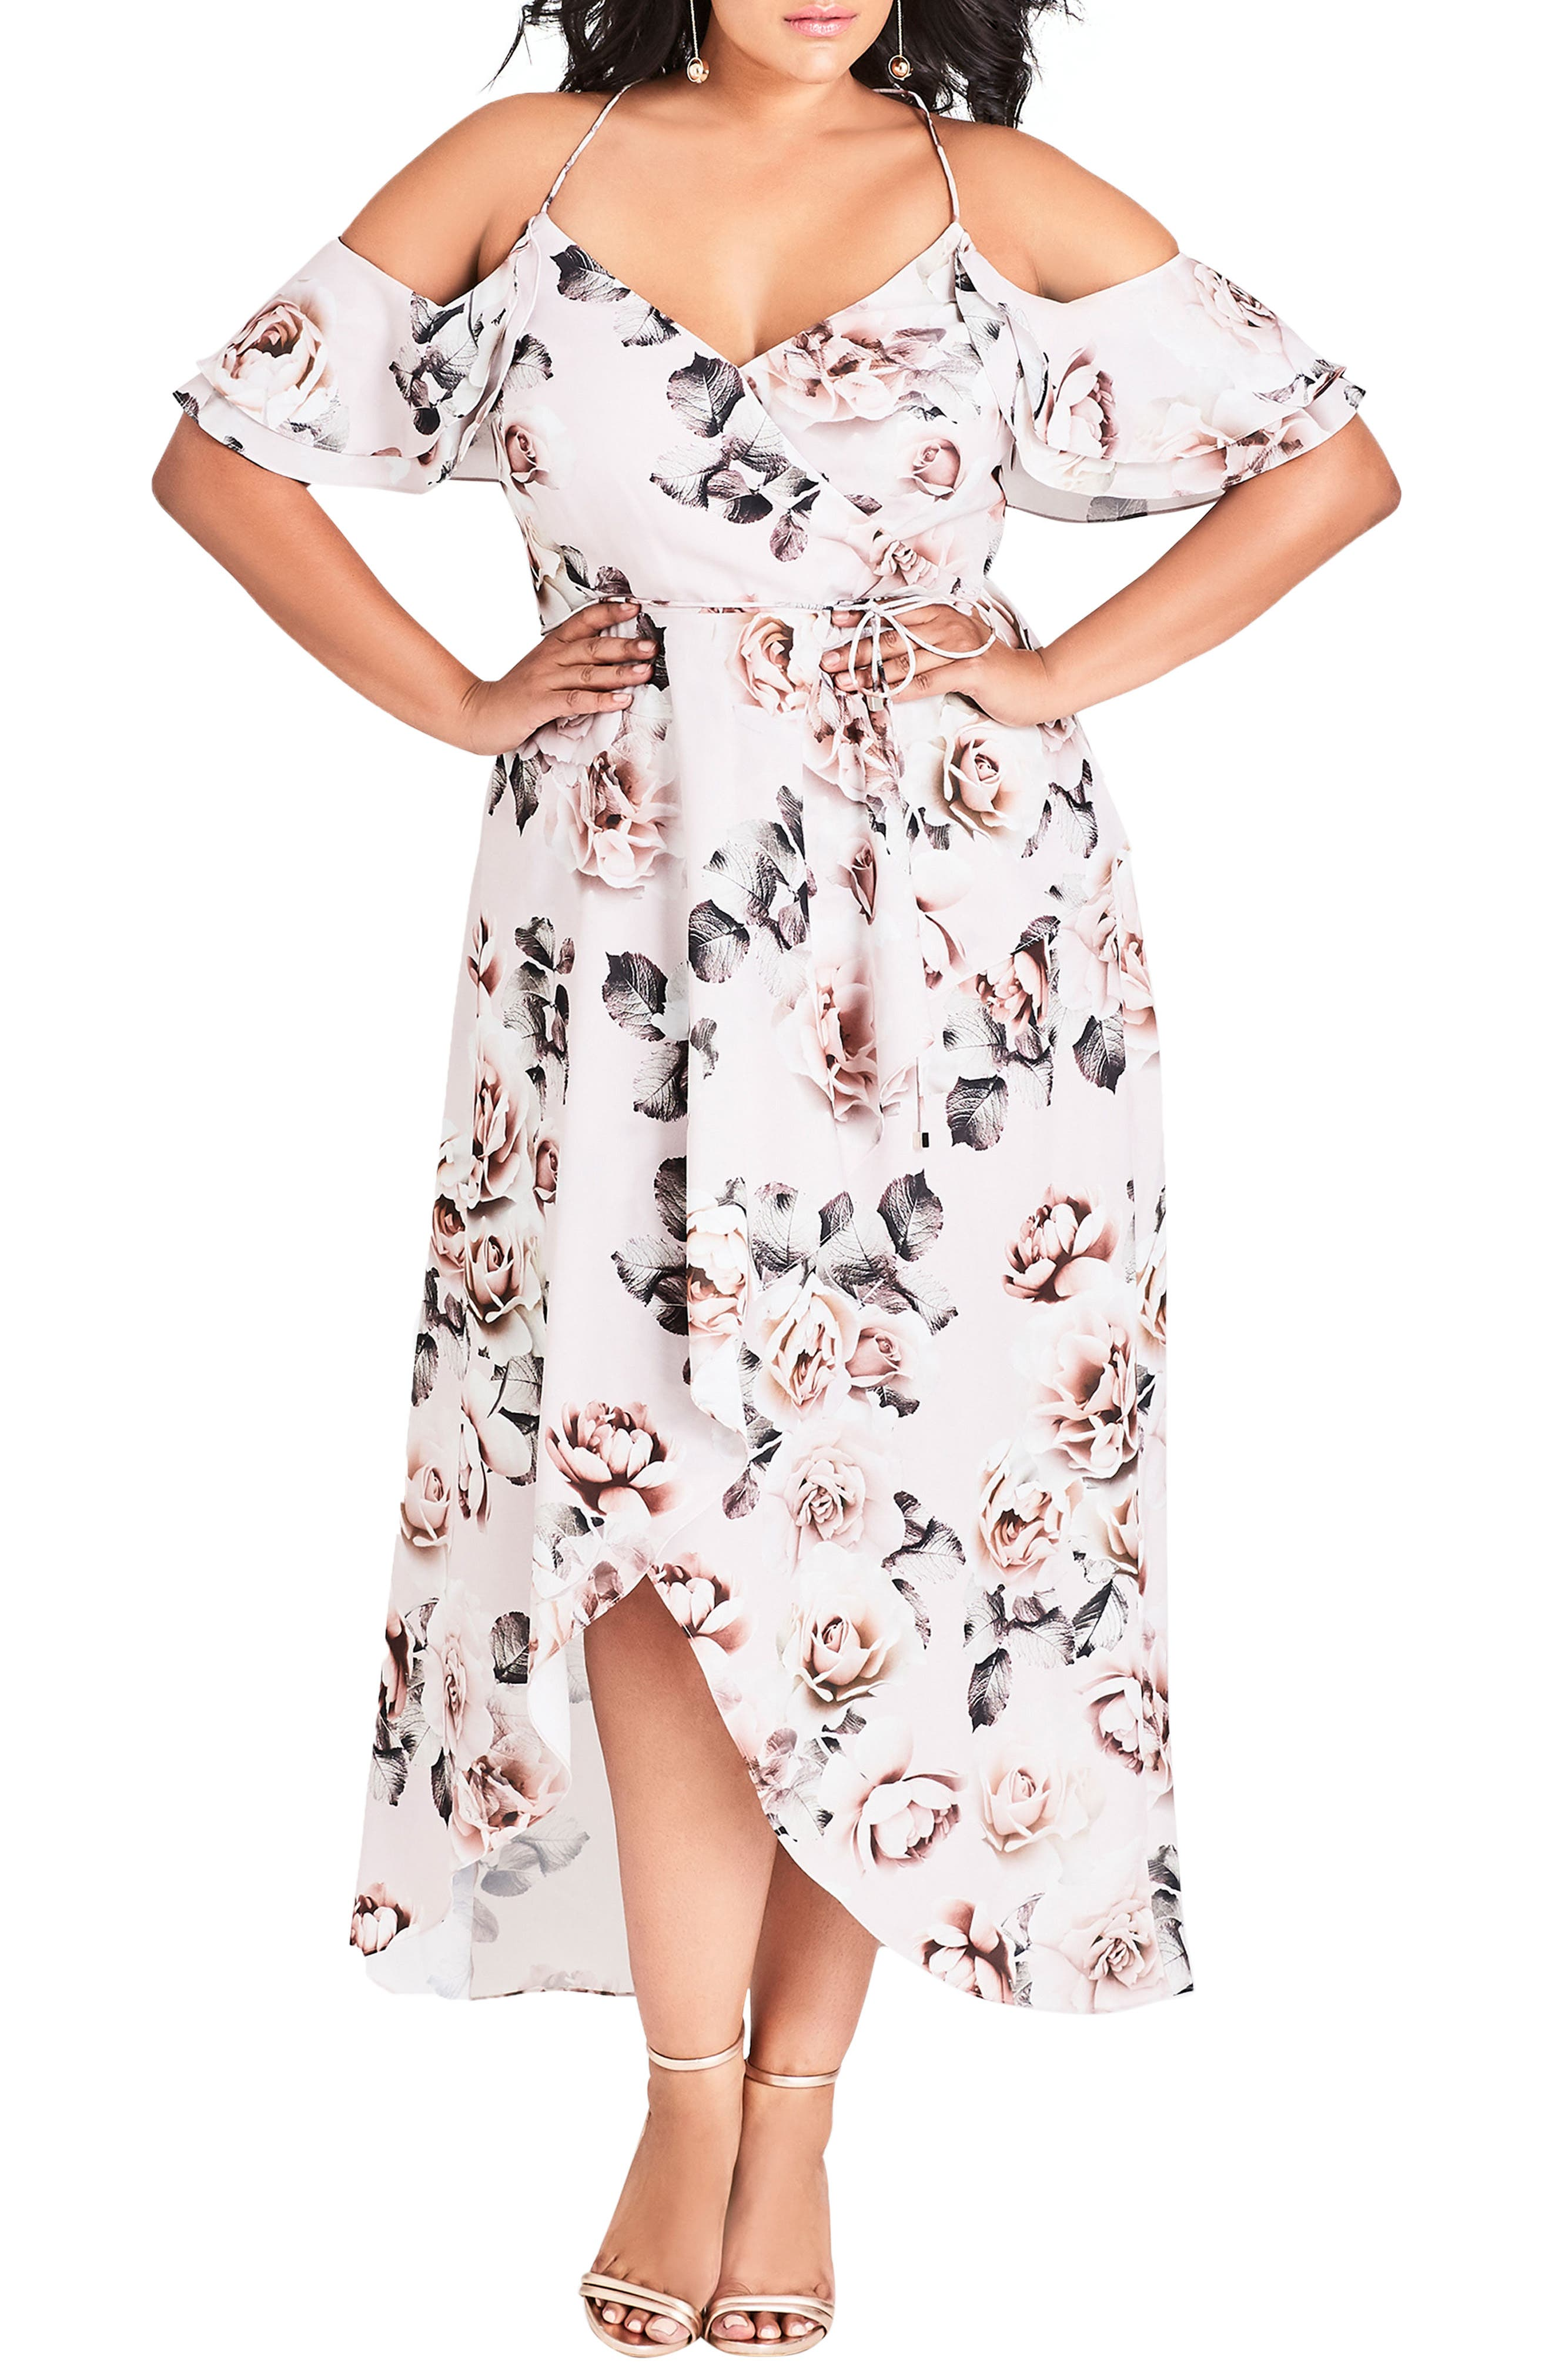 CITY CHIC, Champagne Rose Cold Shoulder Maxi Dress, Main thumbnail 1, color, CHAMPAGNE ROSE